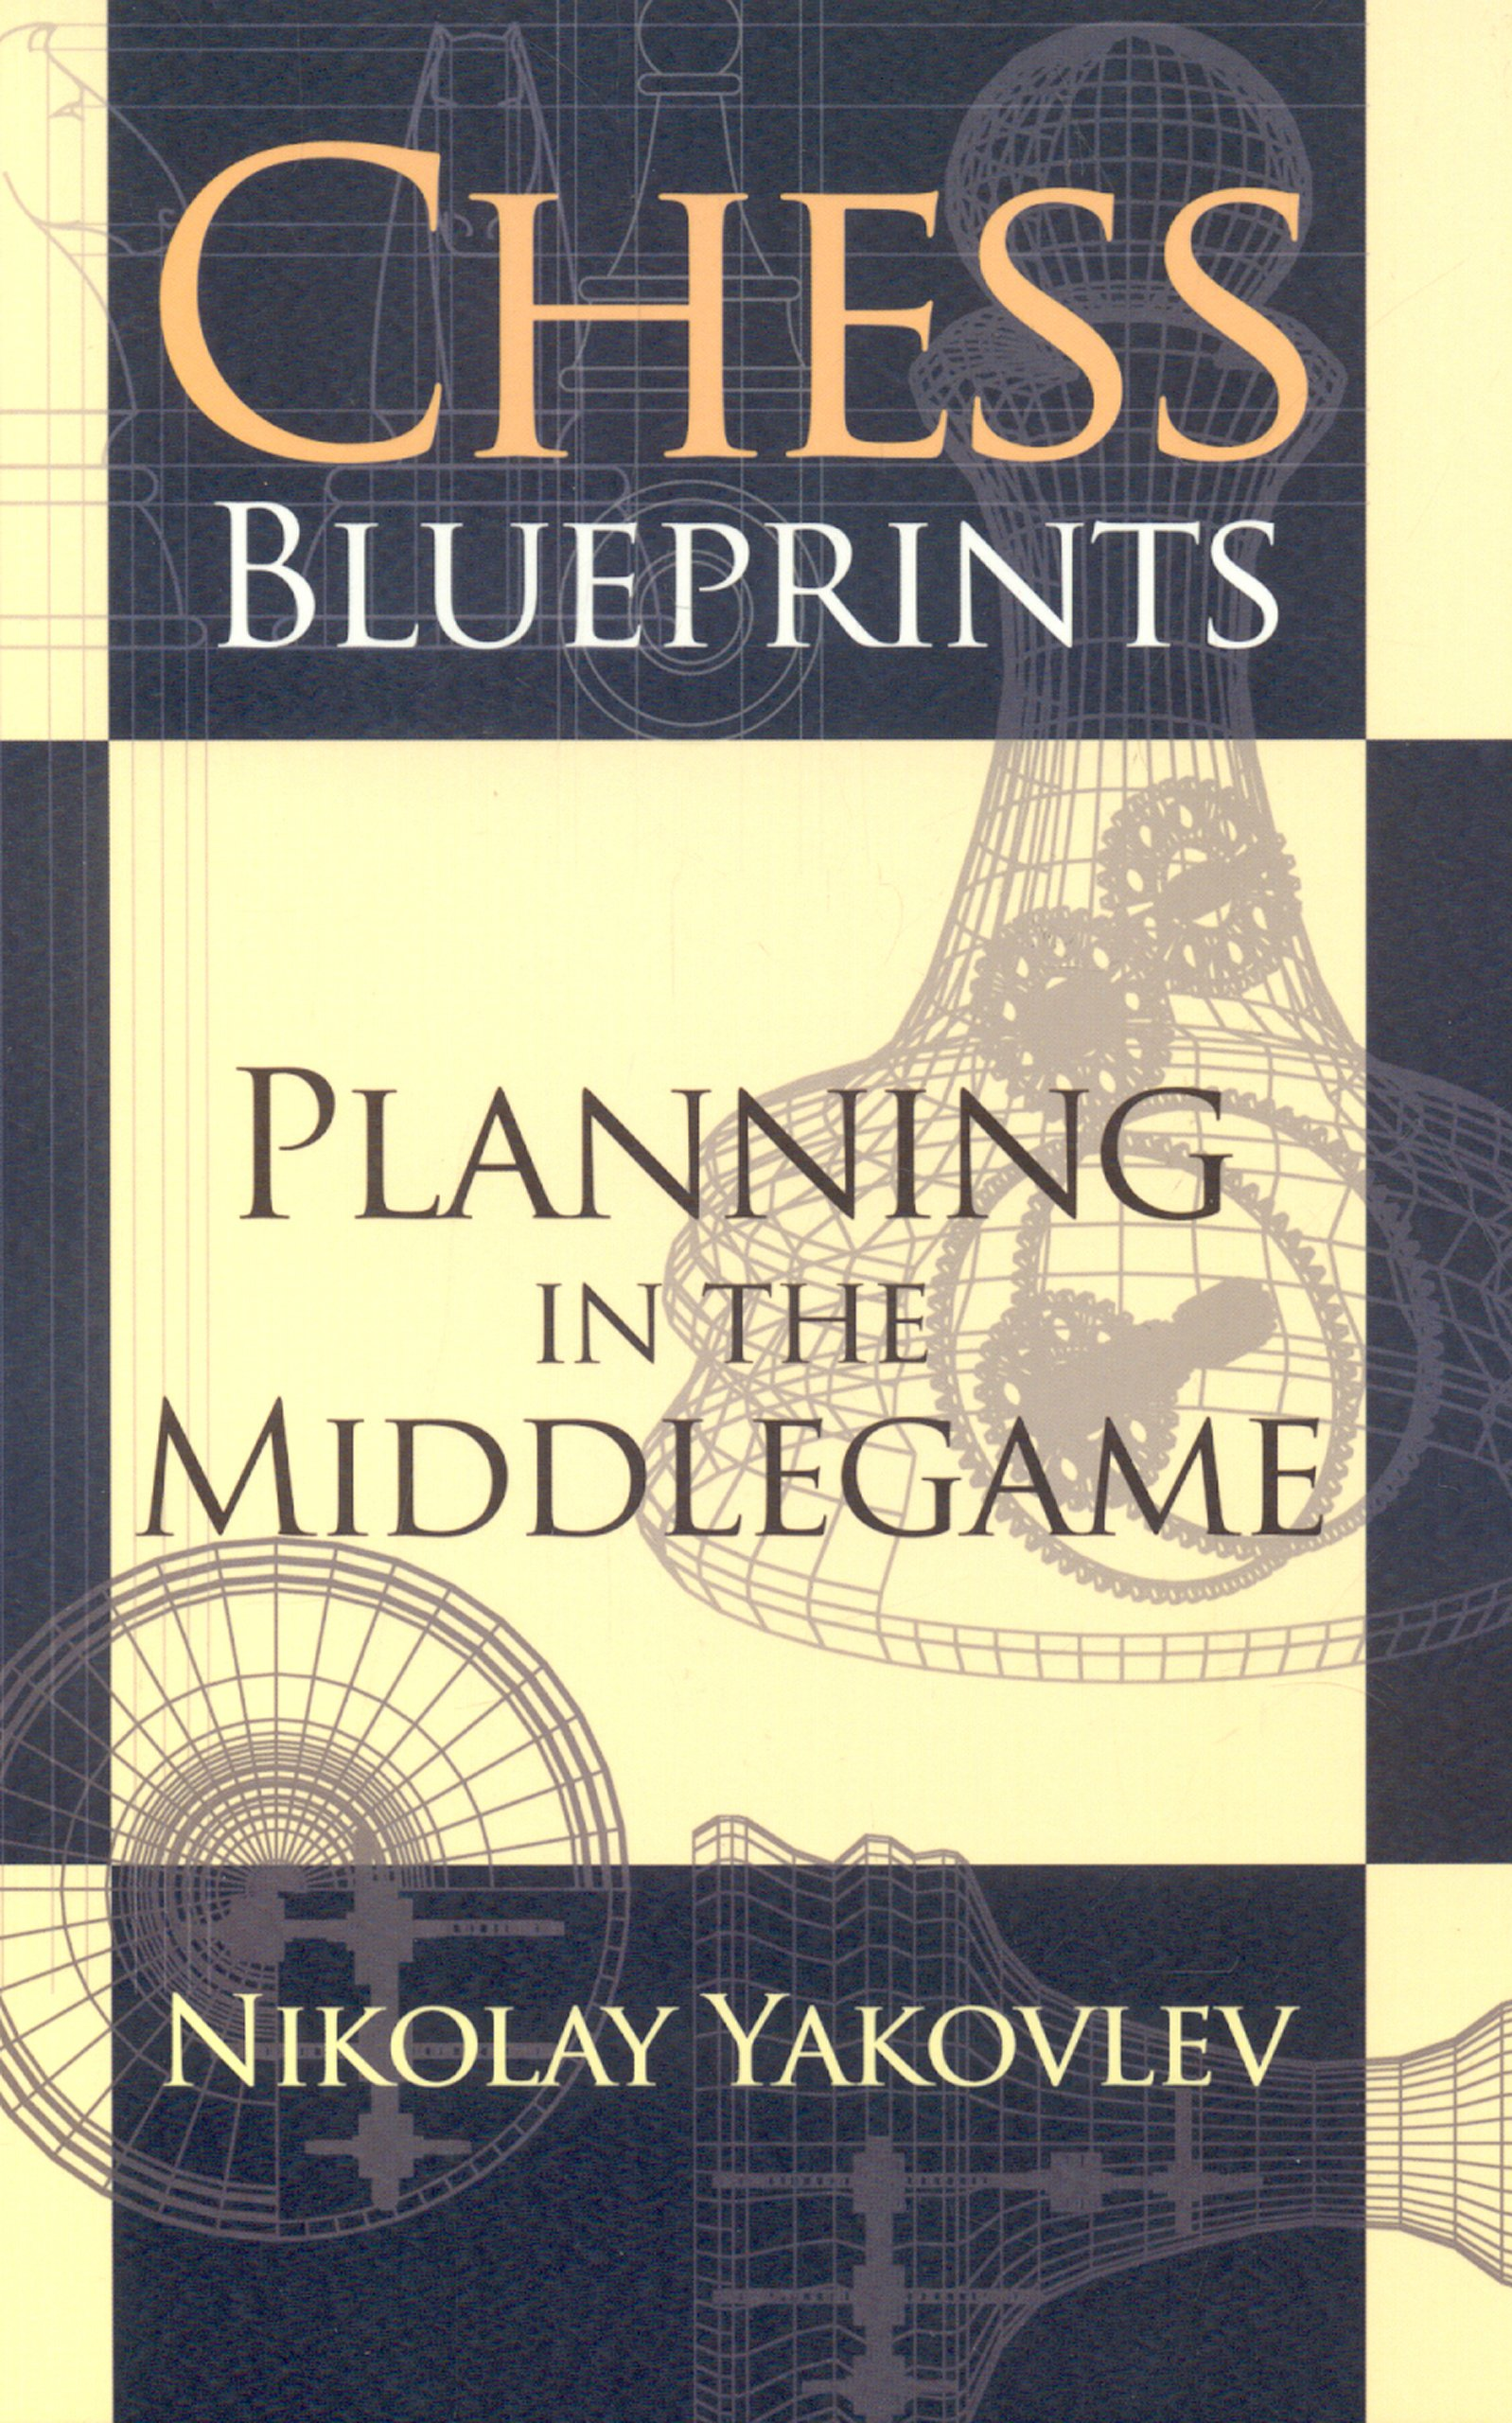 Chess Blueprints - Planning in the Middlegame